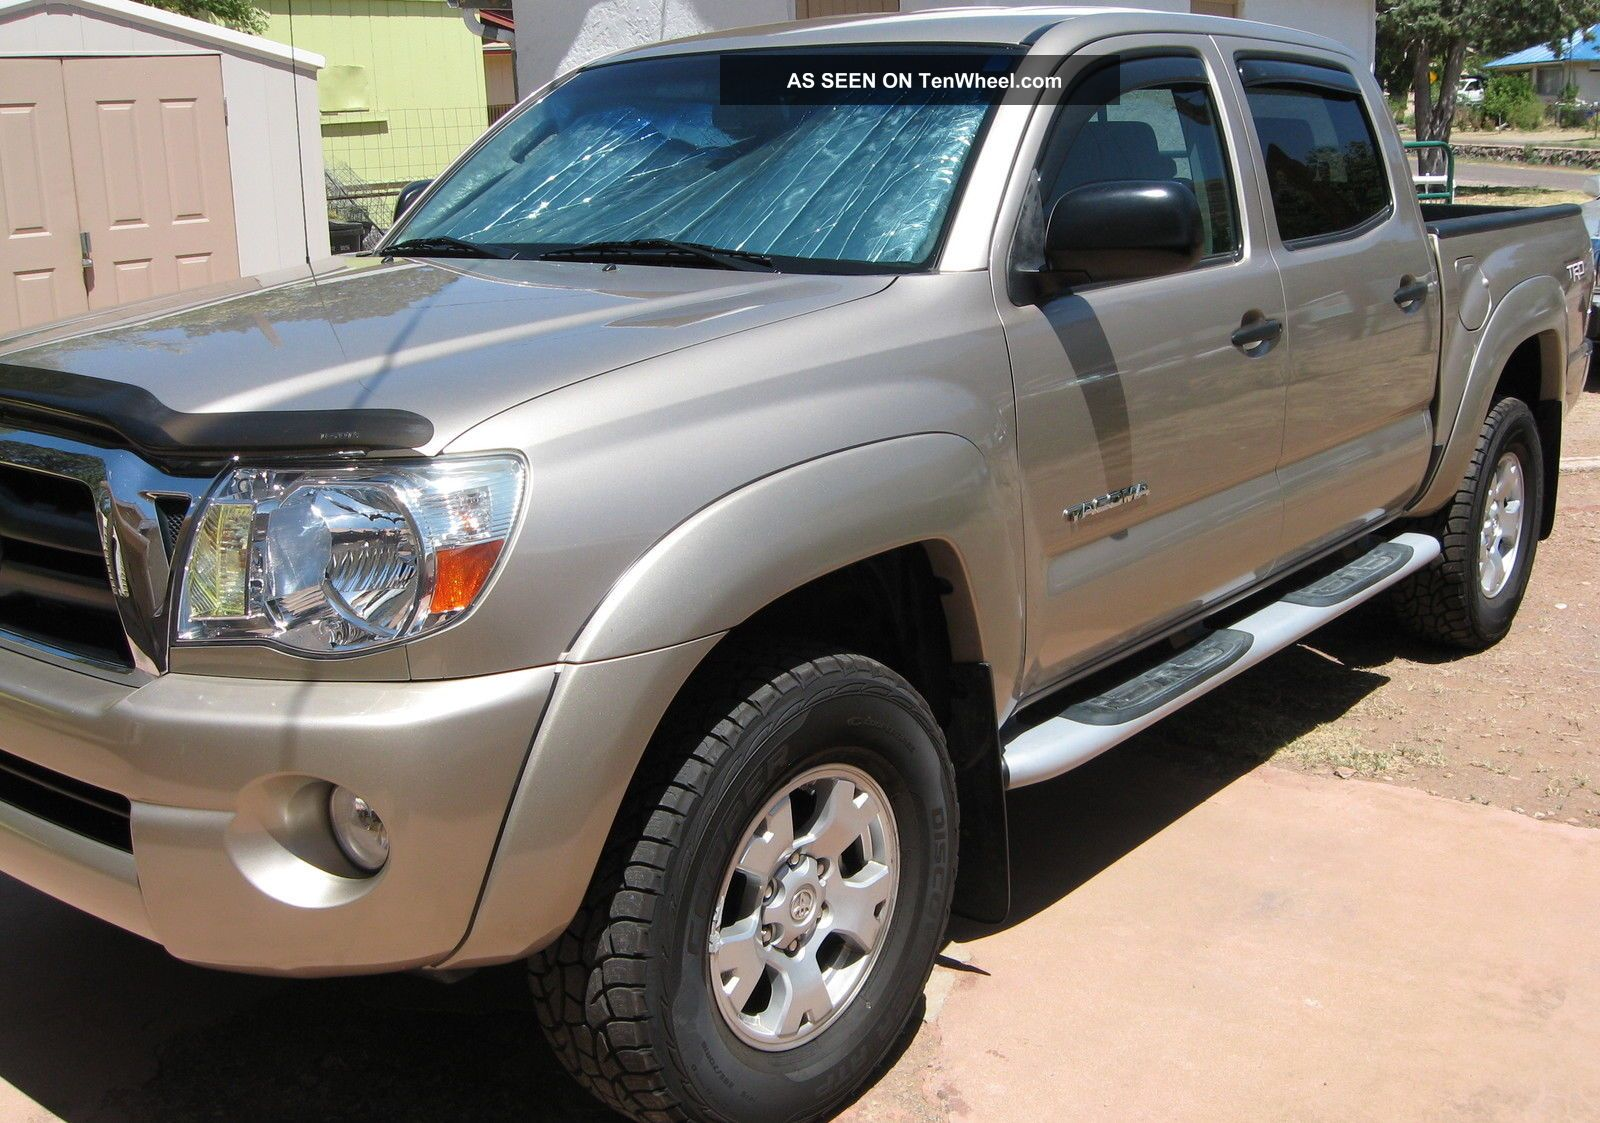 2008 Toyota Tacoma 4.  0l V6,  4wd,  4 Door Double Cab And Desert Color Tacoma photo